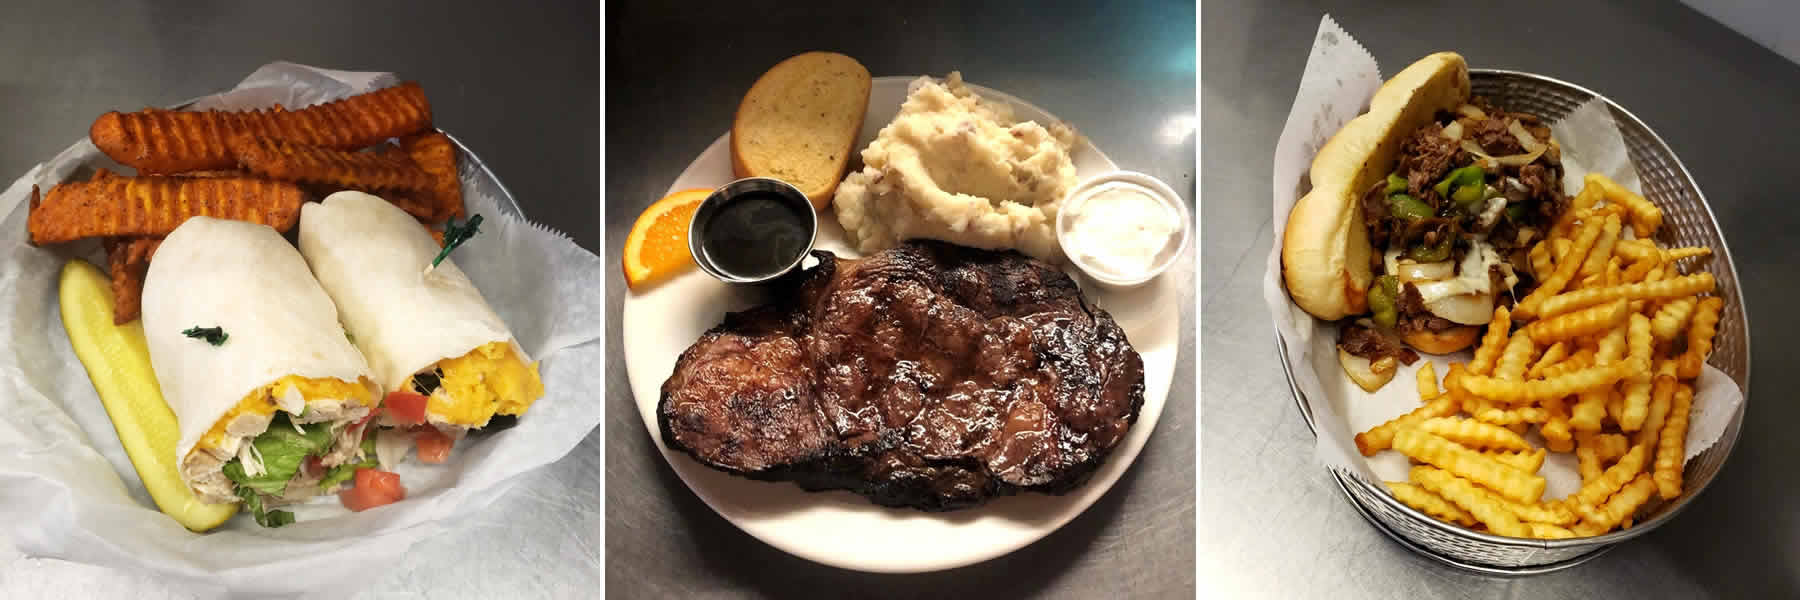 Enjoy a fantastic menu of steaks, burgers, sandwiches, and more at the Ice Cracking Lodge in Ponsford, Minnesota.